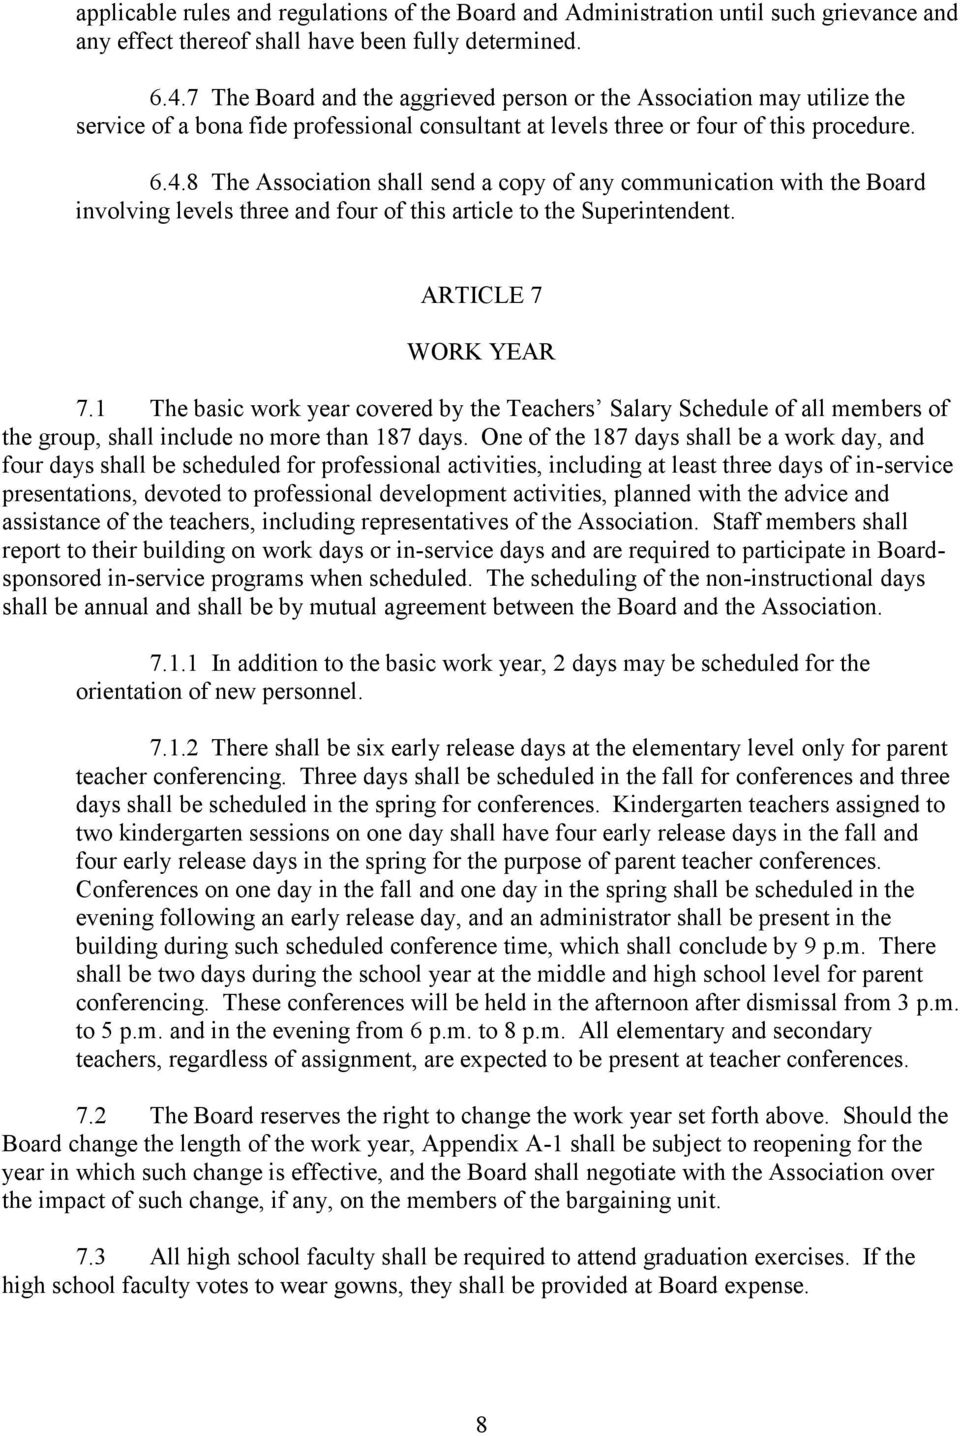 8 The Association shall send a copy of any communication with the Board involving levels three and four of this article to the Superintendent. ARTICLE 7 WORK YEAR 7.